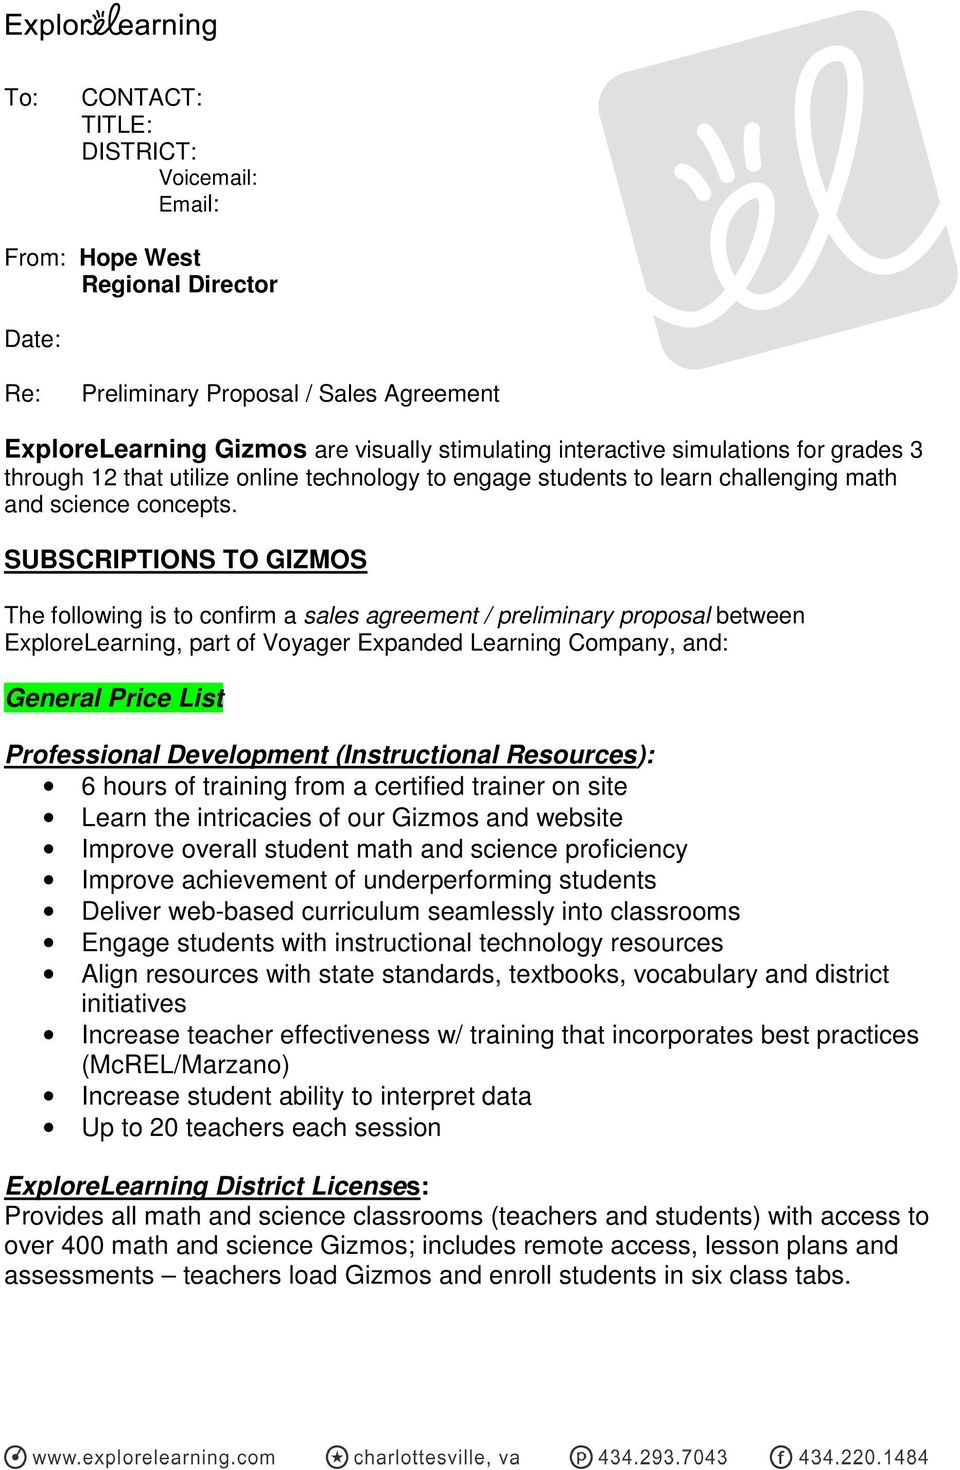 SUBSCRIPTIONS TO GIZMOS The following is to confirm a sales agreement / preliminary proposal between ExploreLearning, part of Voyager Expanded Learning Company, and: General Price List Professional